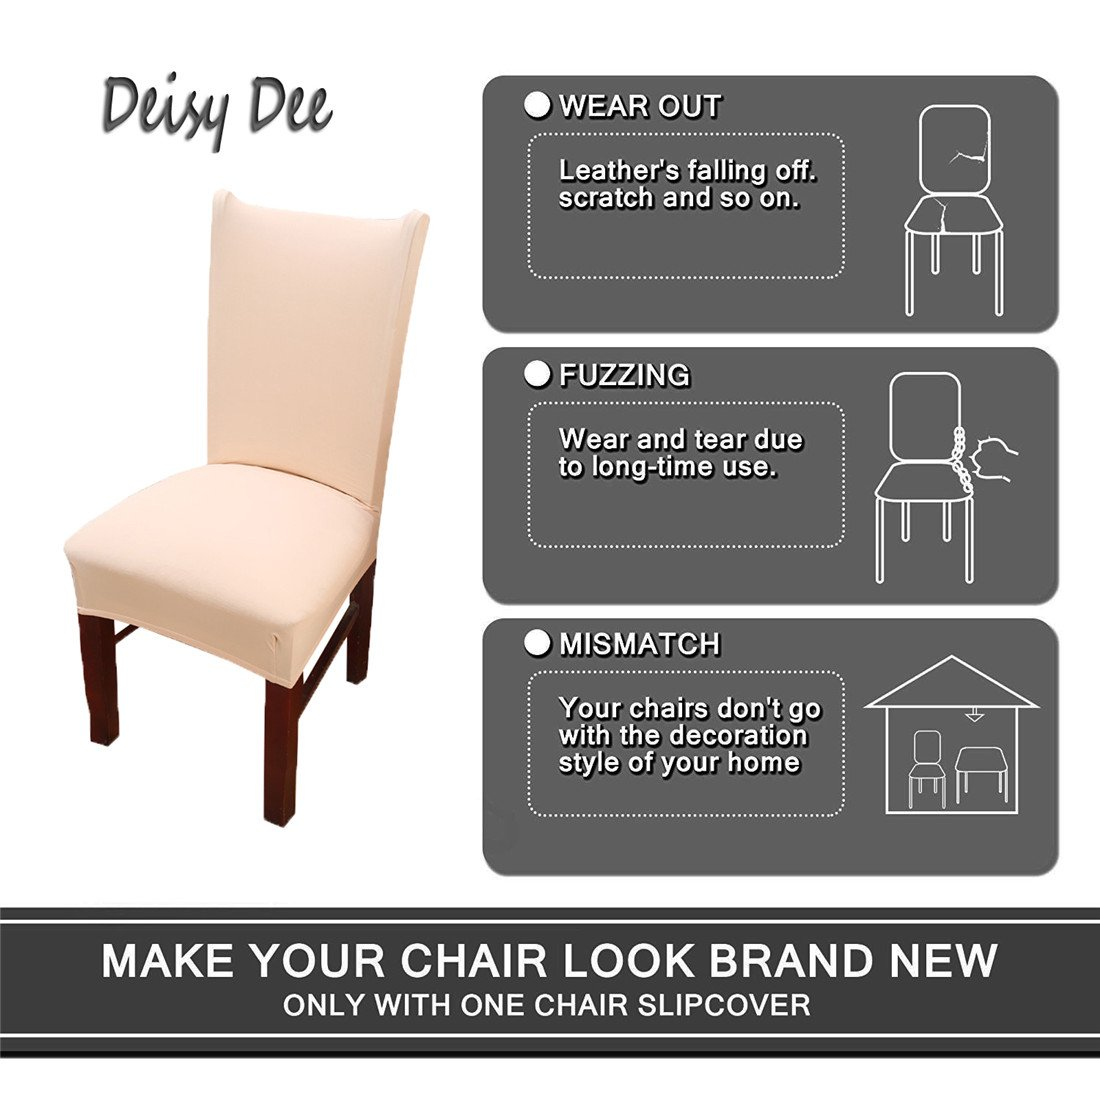 Deisy Dee Stretch Solid Color Chair Covers Removable Washable for Hotel Dining Room Ceremony Chair Slipcovers Pack of 6 C093 (Beige) by Deisy Dee (Image #3)